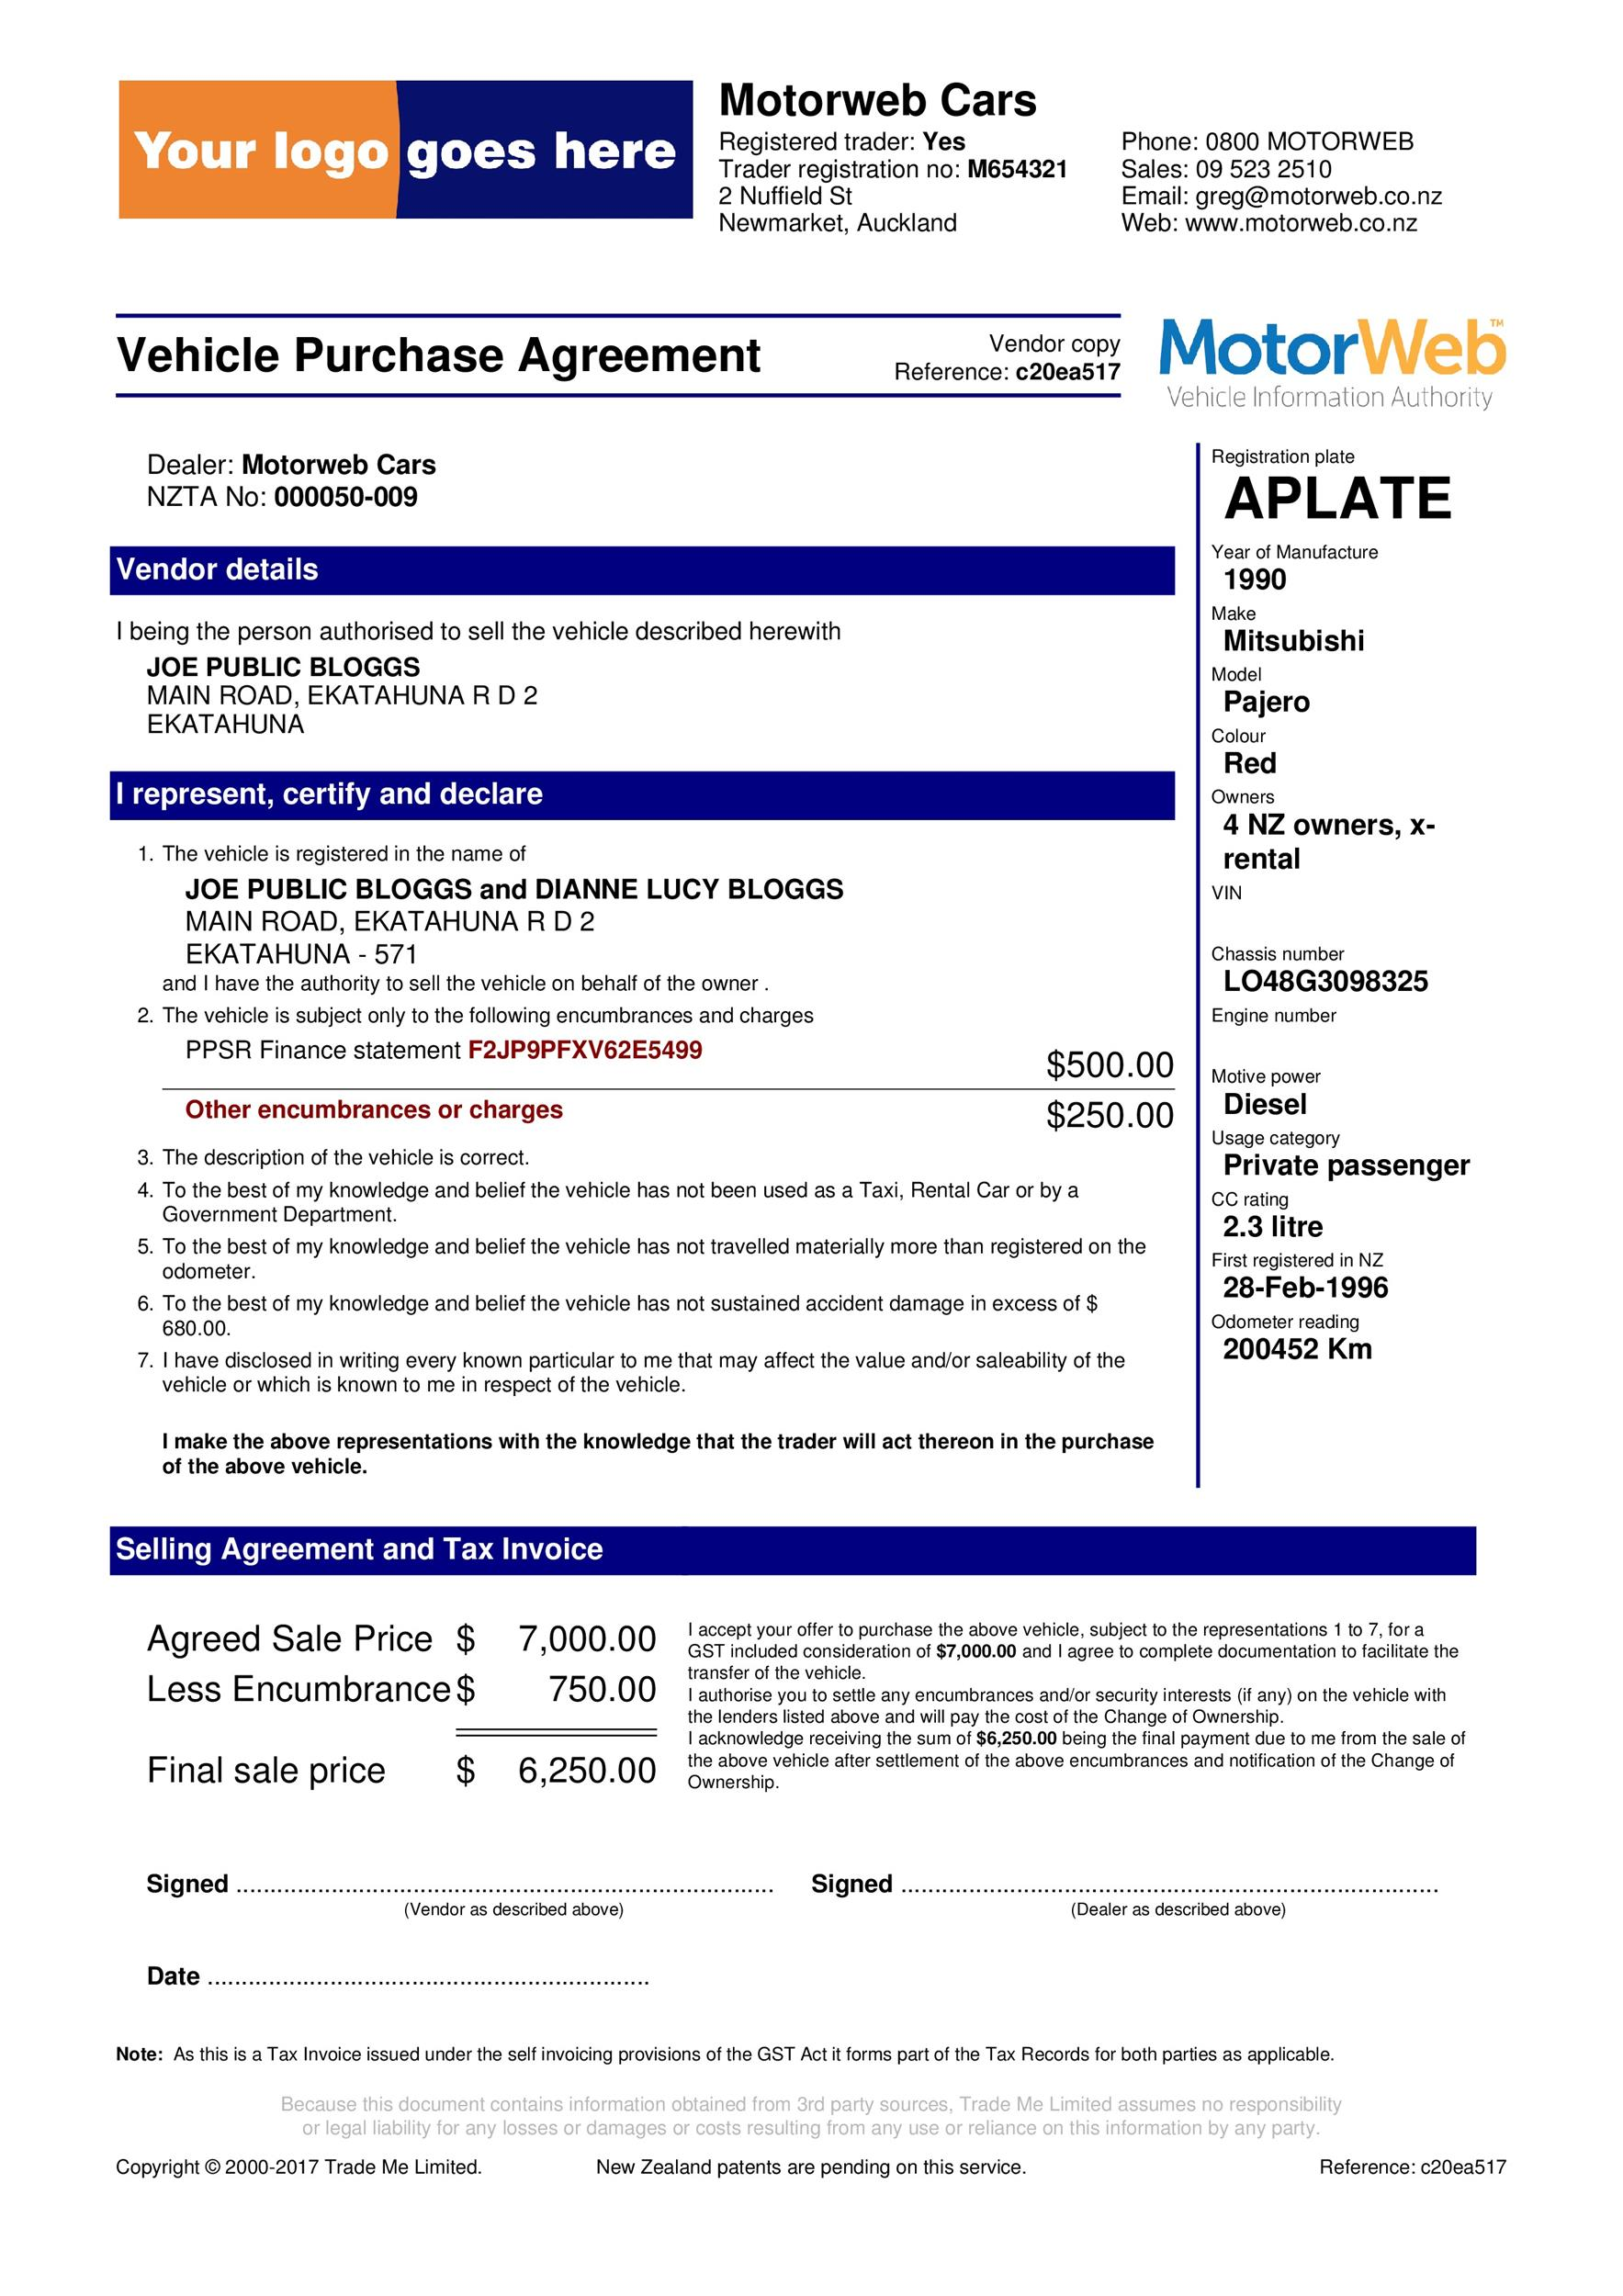 vehicle purchase agreement 16 Template Lab – Vehicle Purchase Agreement